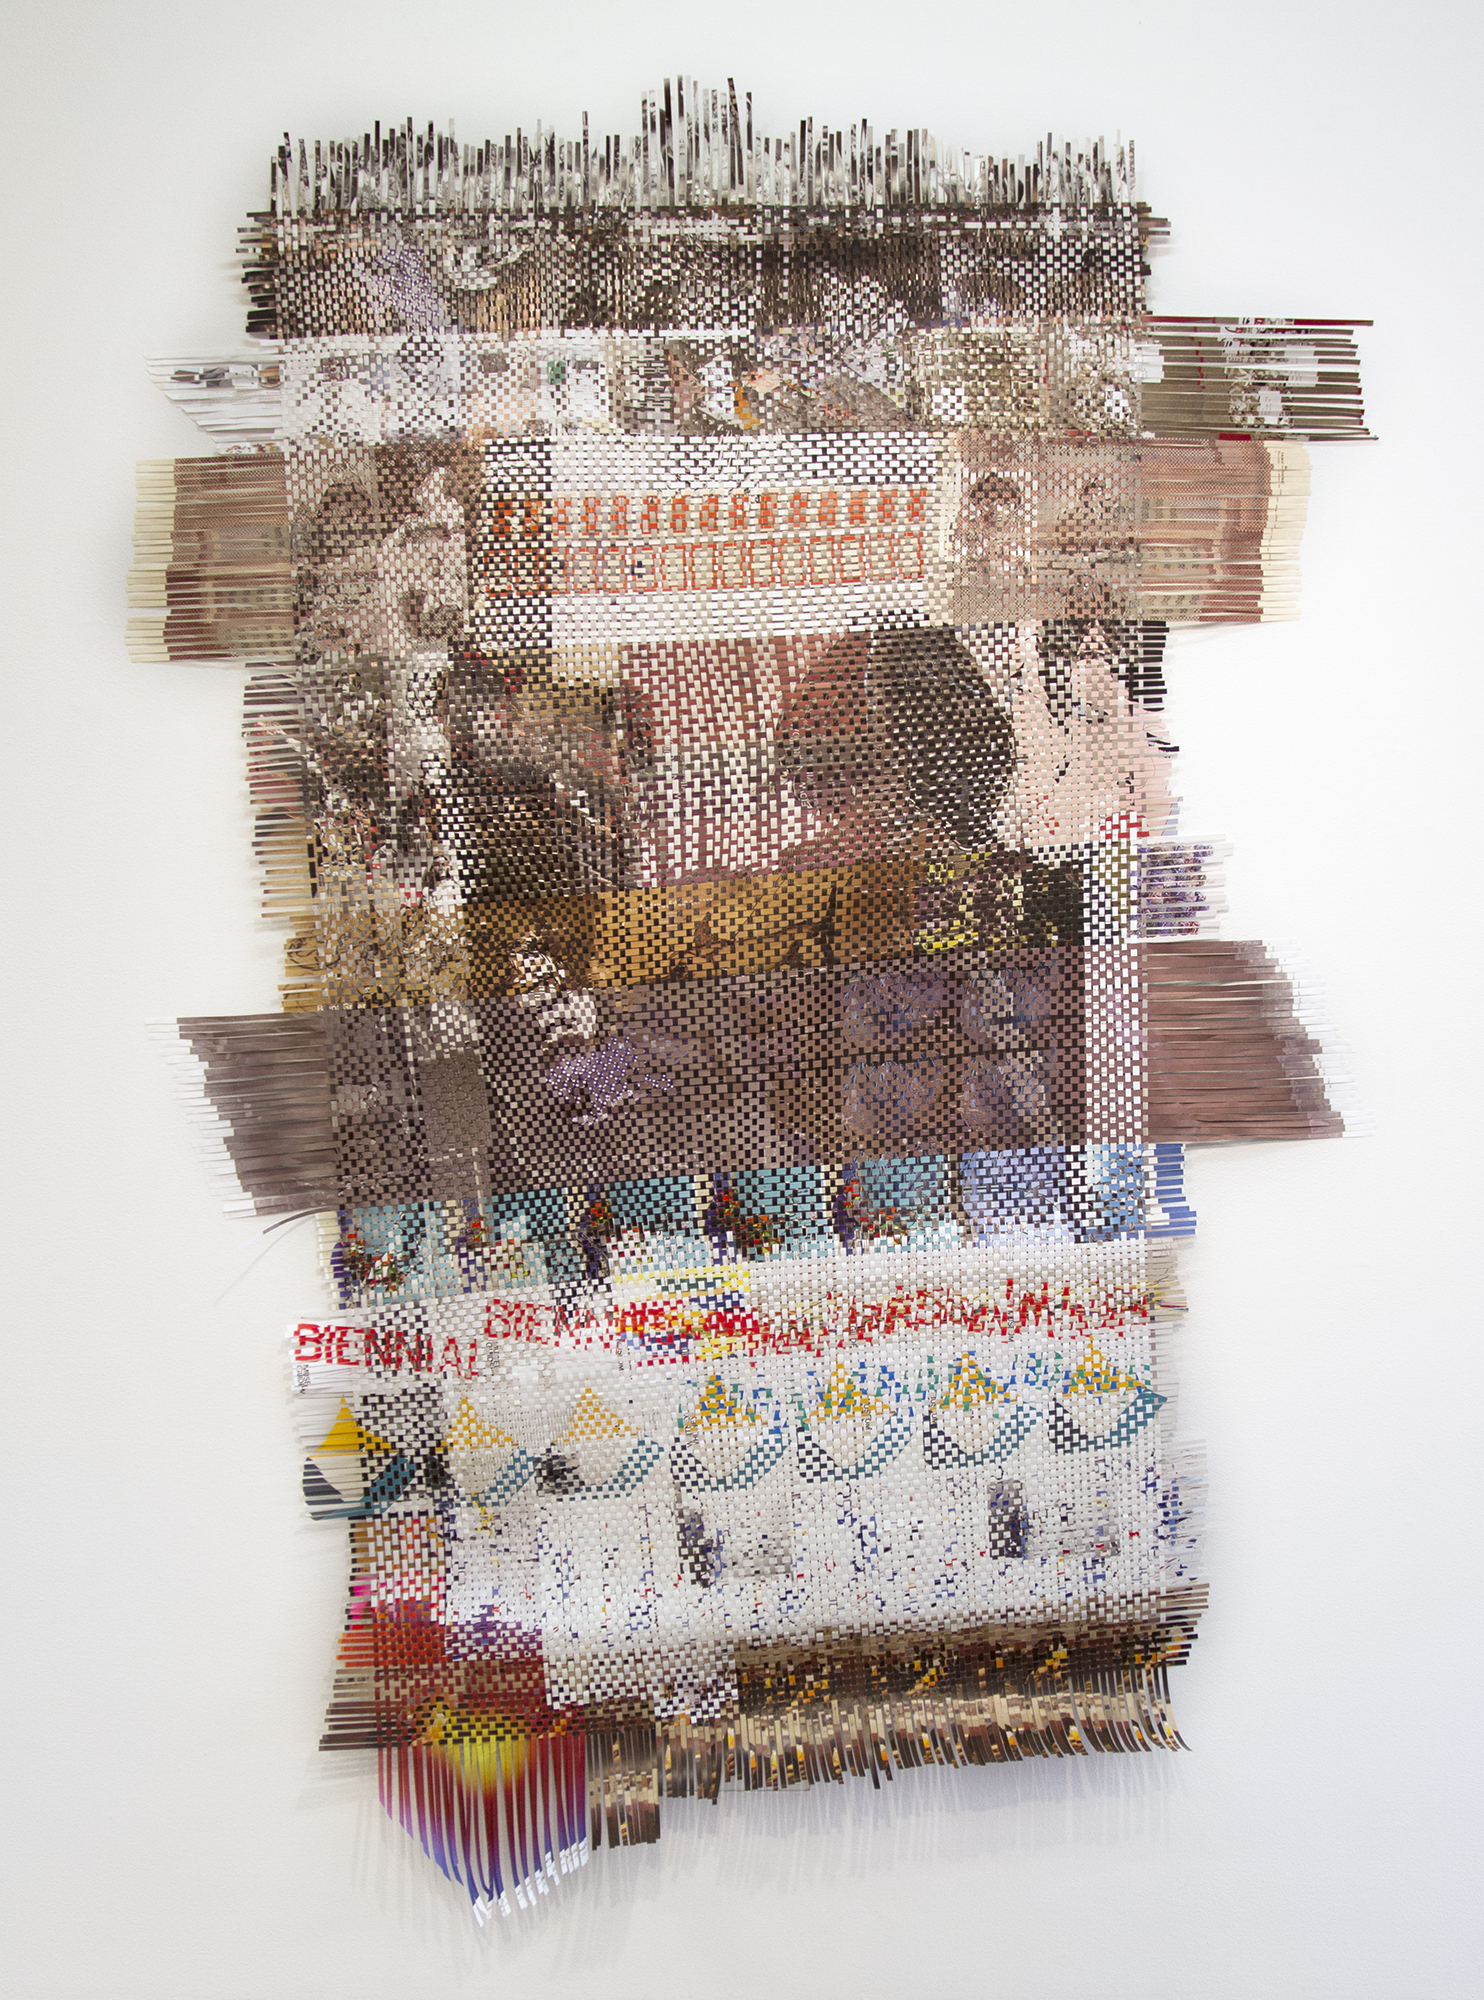 New York, 2014, woven paper ephemera from New York art exhibitions, 98 x 66